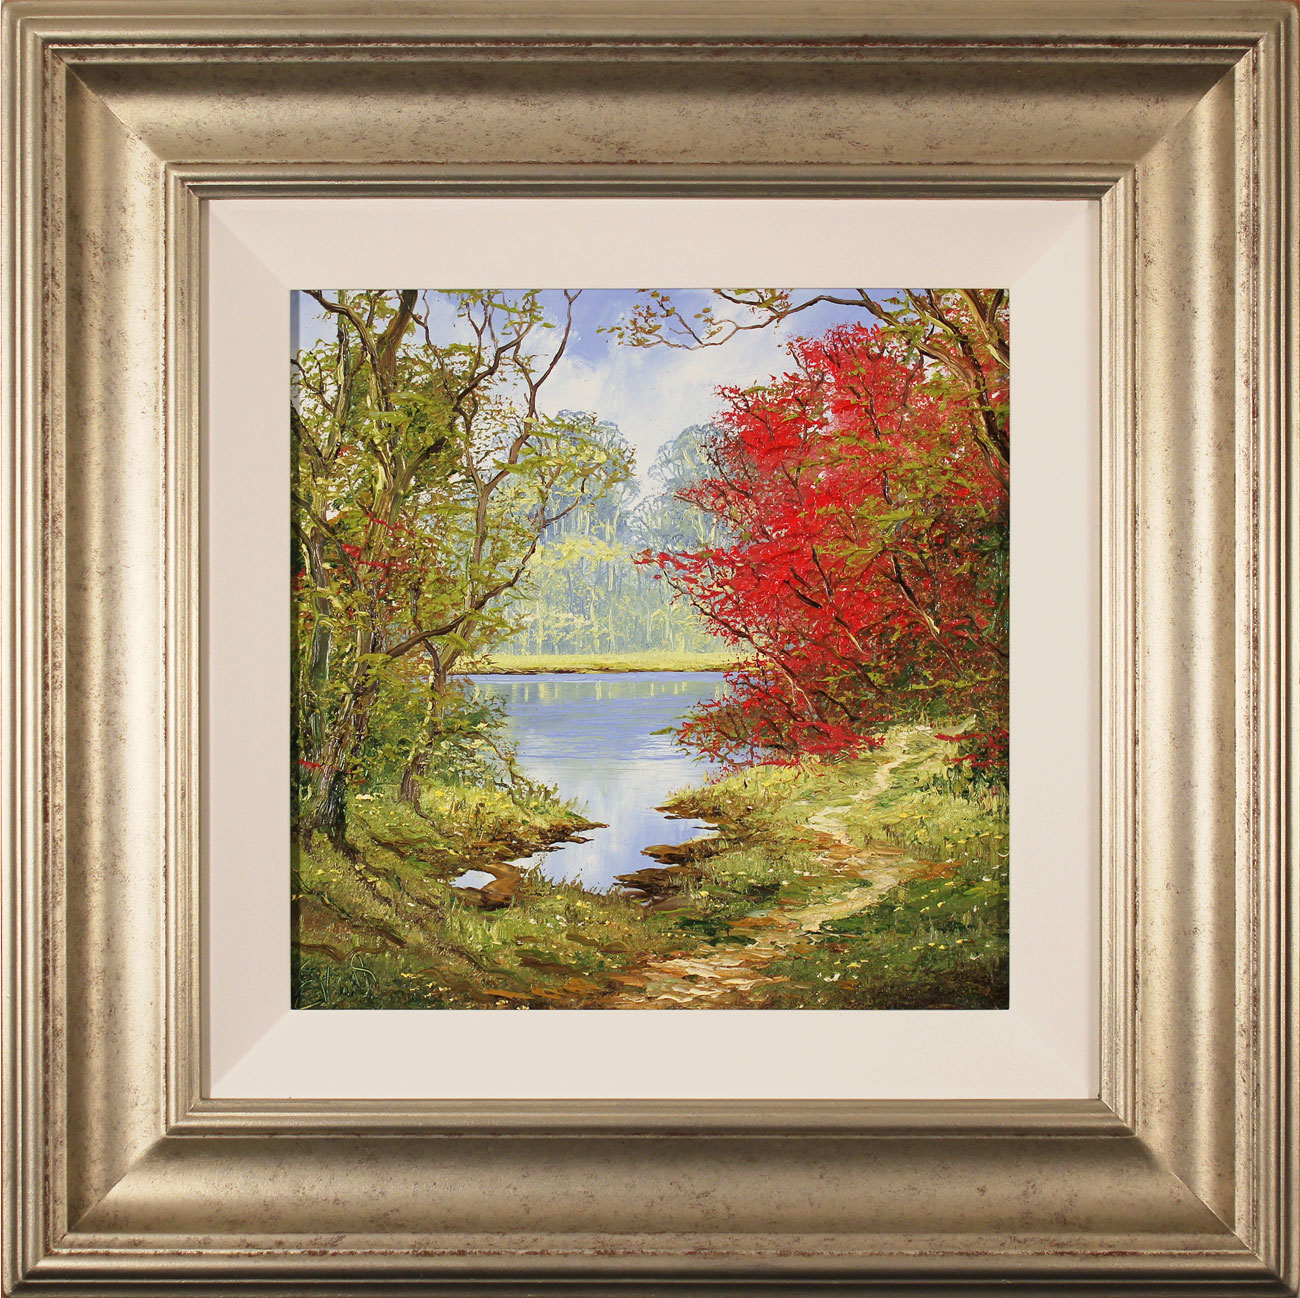 Terry Evans, Original oil painting on canvas, Early Autumn Wood Click to enlarge